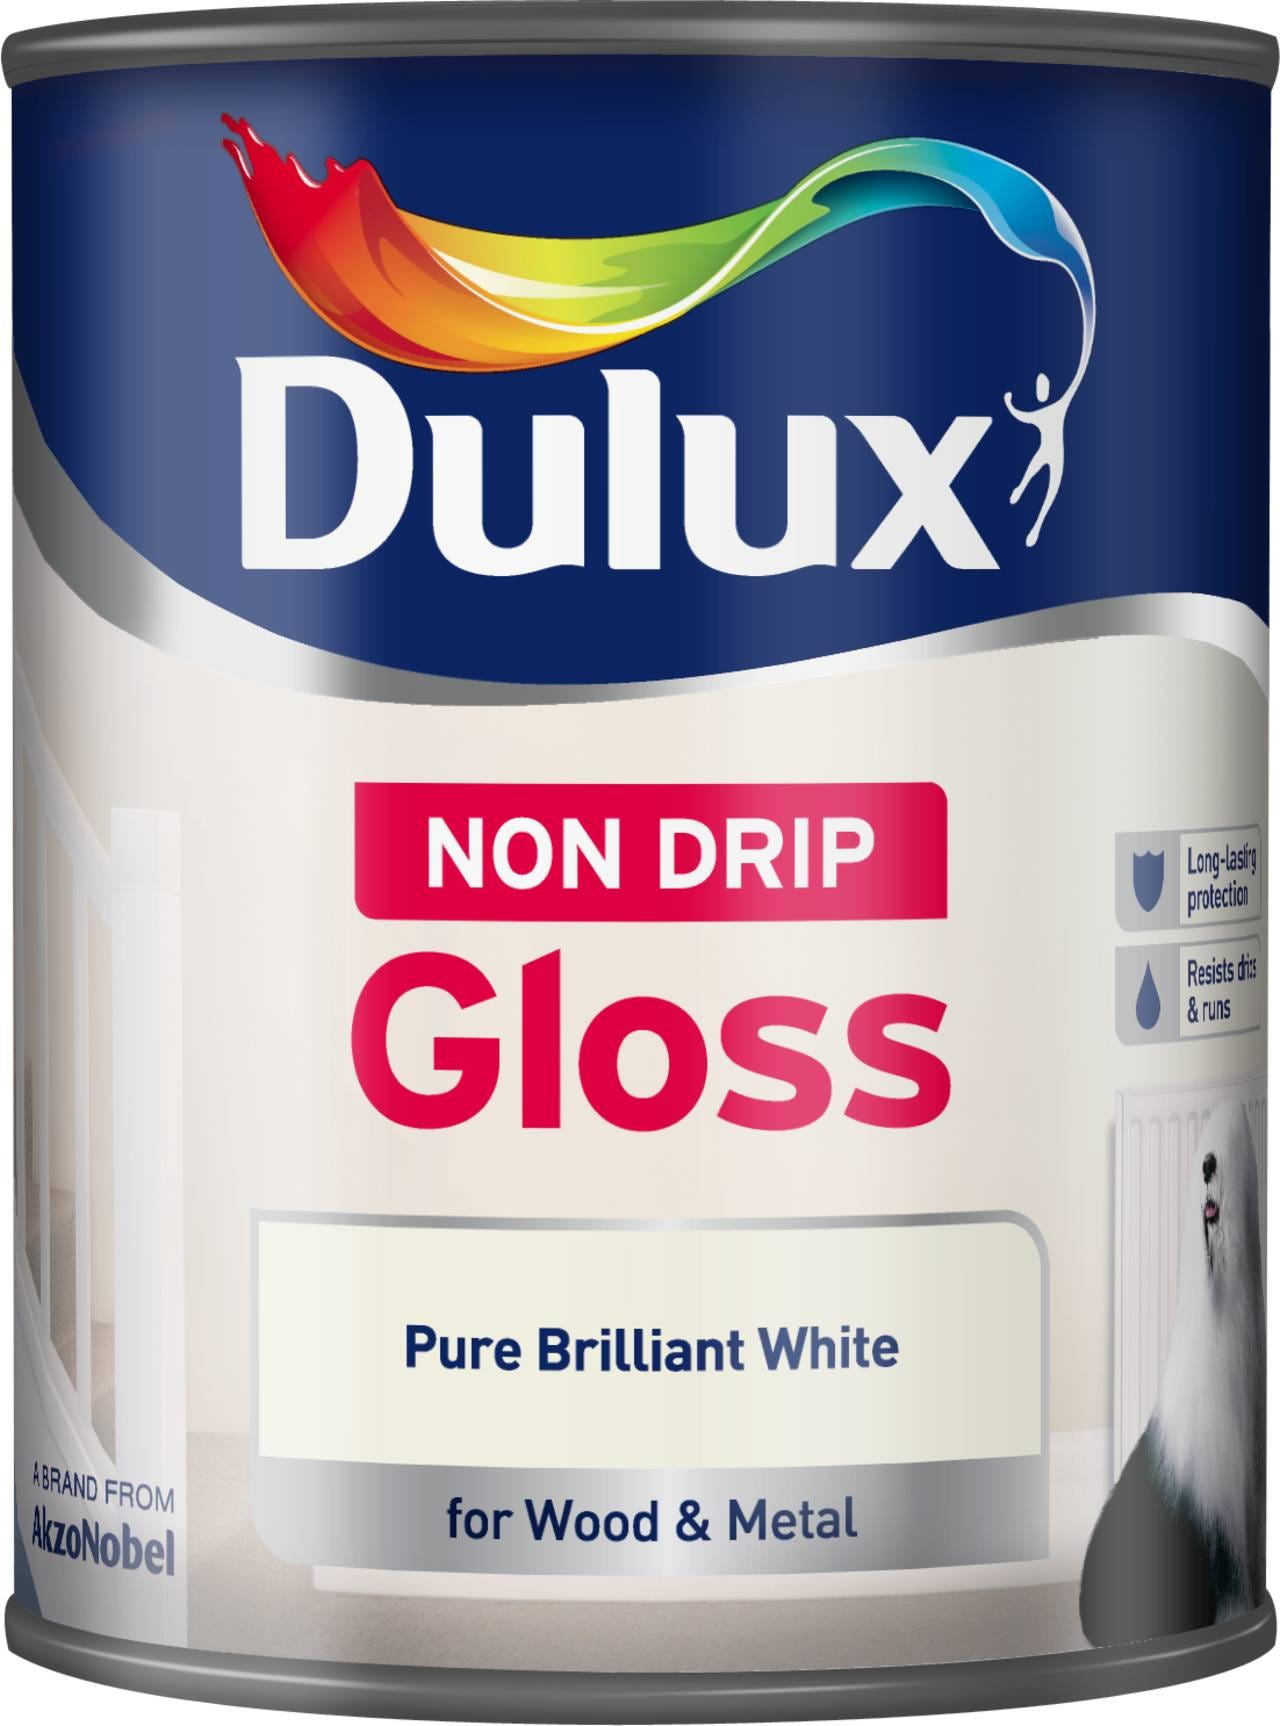 Compare prices for Dulux Non-Drip Gloss Paint - Pure Brilliant White - 750ml